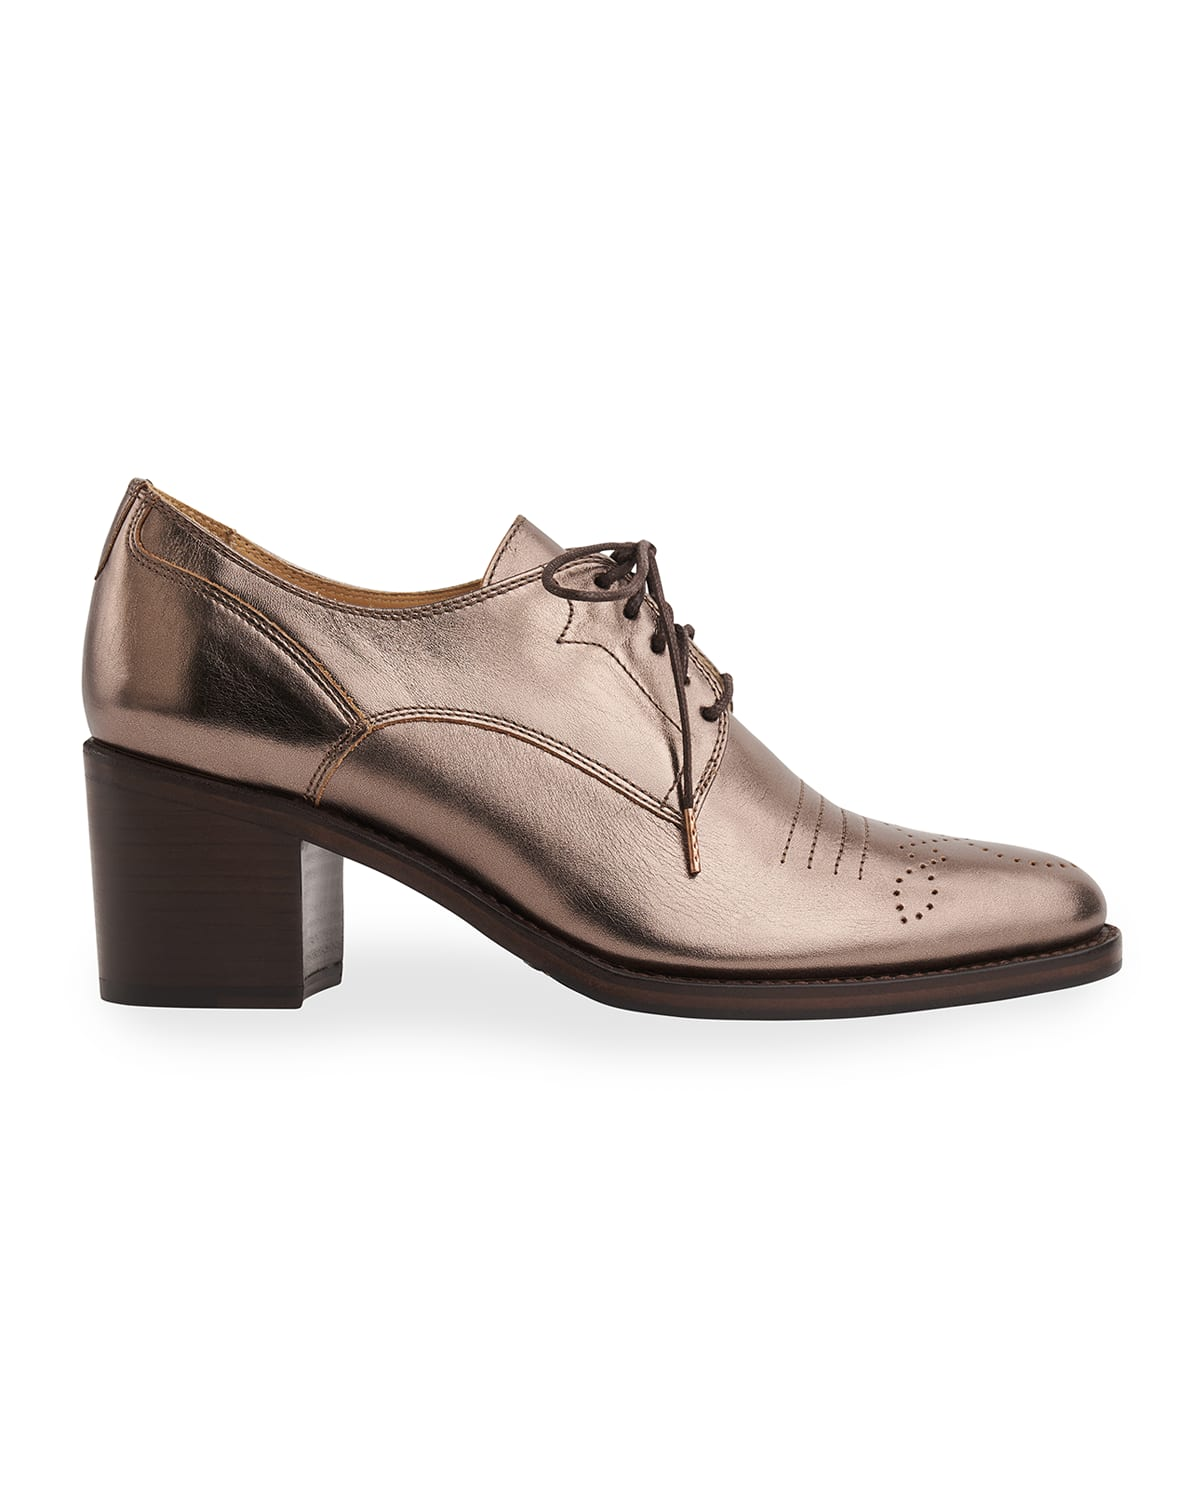 Miss Button Metallic Heeled Loafers